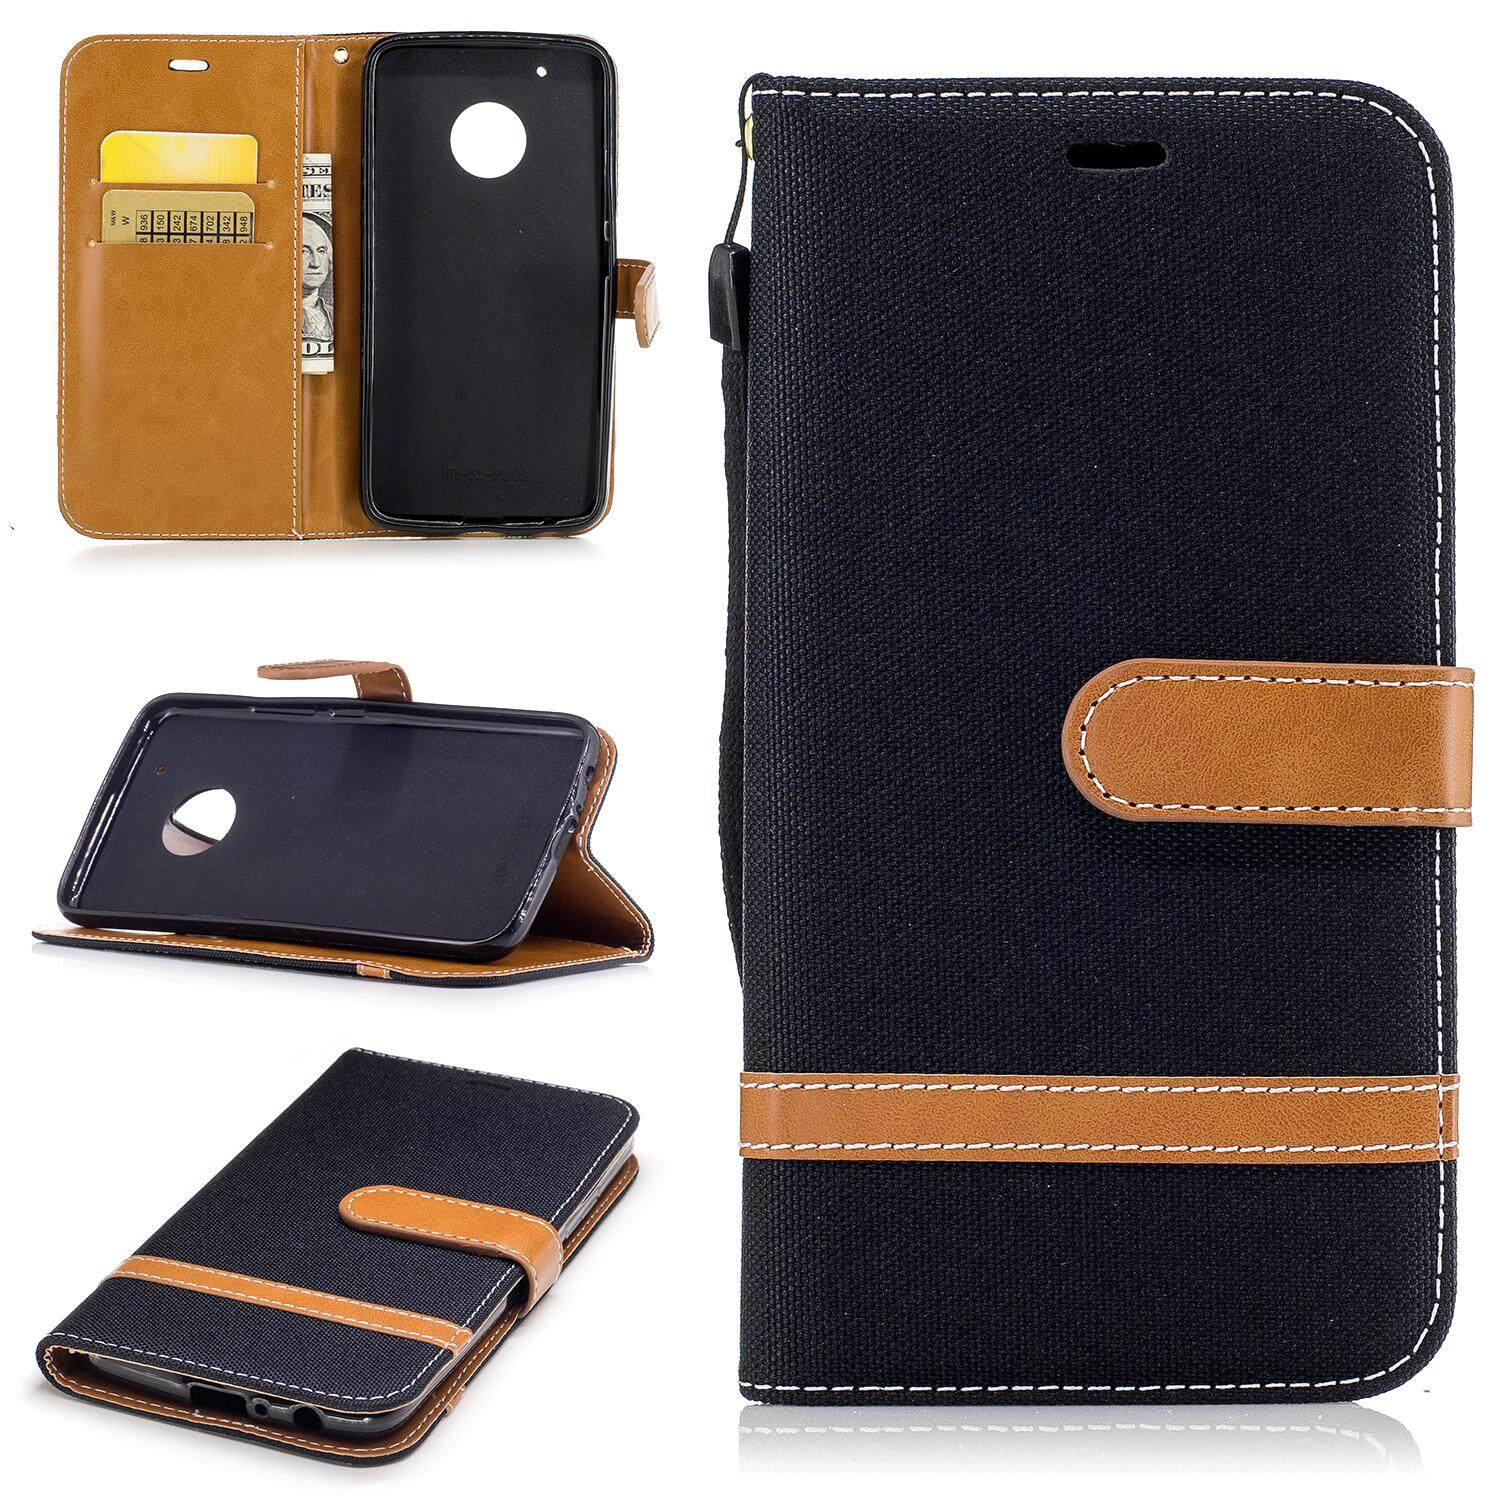 Motorola Moto G5 Plus Case,premium Jeans Style Denim And Pu Leather Filp Magnet Wallet Stand Card Slots Protective Case Cover With Hand Strap For Motorola Moto G5 Plus - Intl.